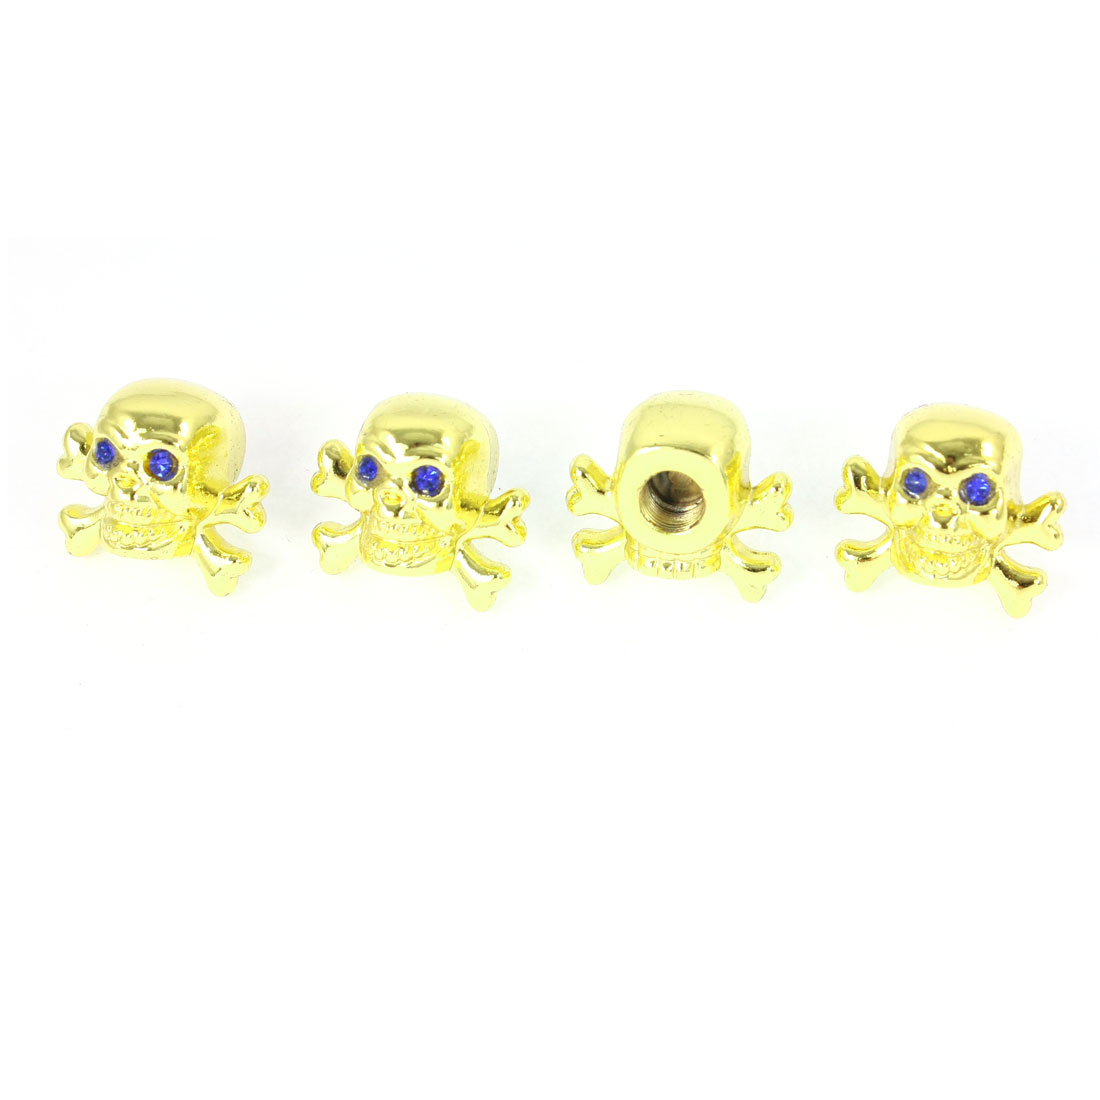 4 Pcs Blue Rhinestones Decor Gold Tone Skull Shape Vehicles Tyre Valve Stem Caps